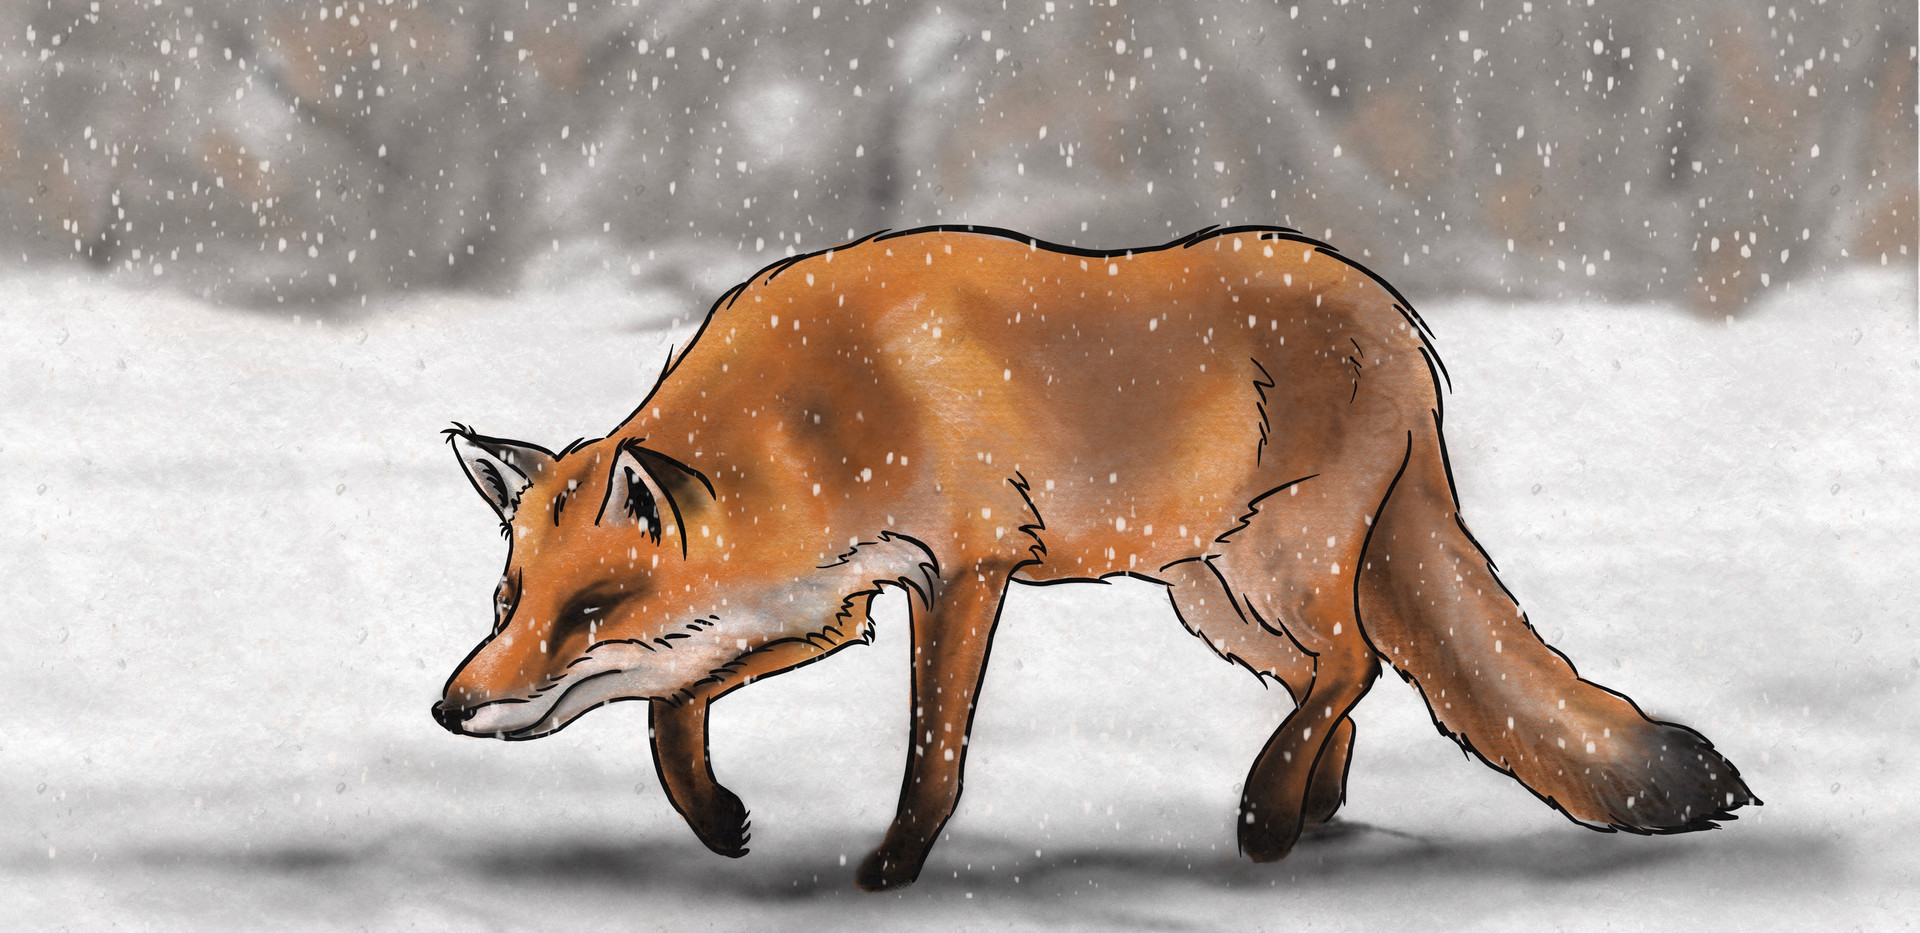 Joseph Grice Red Fox Digital Illustration